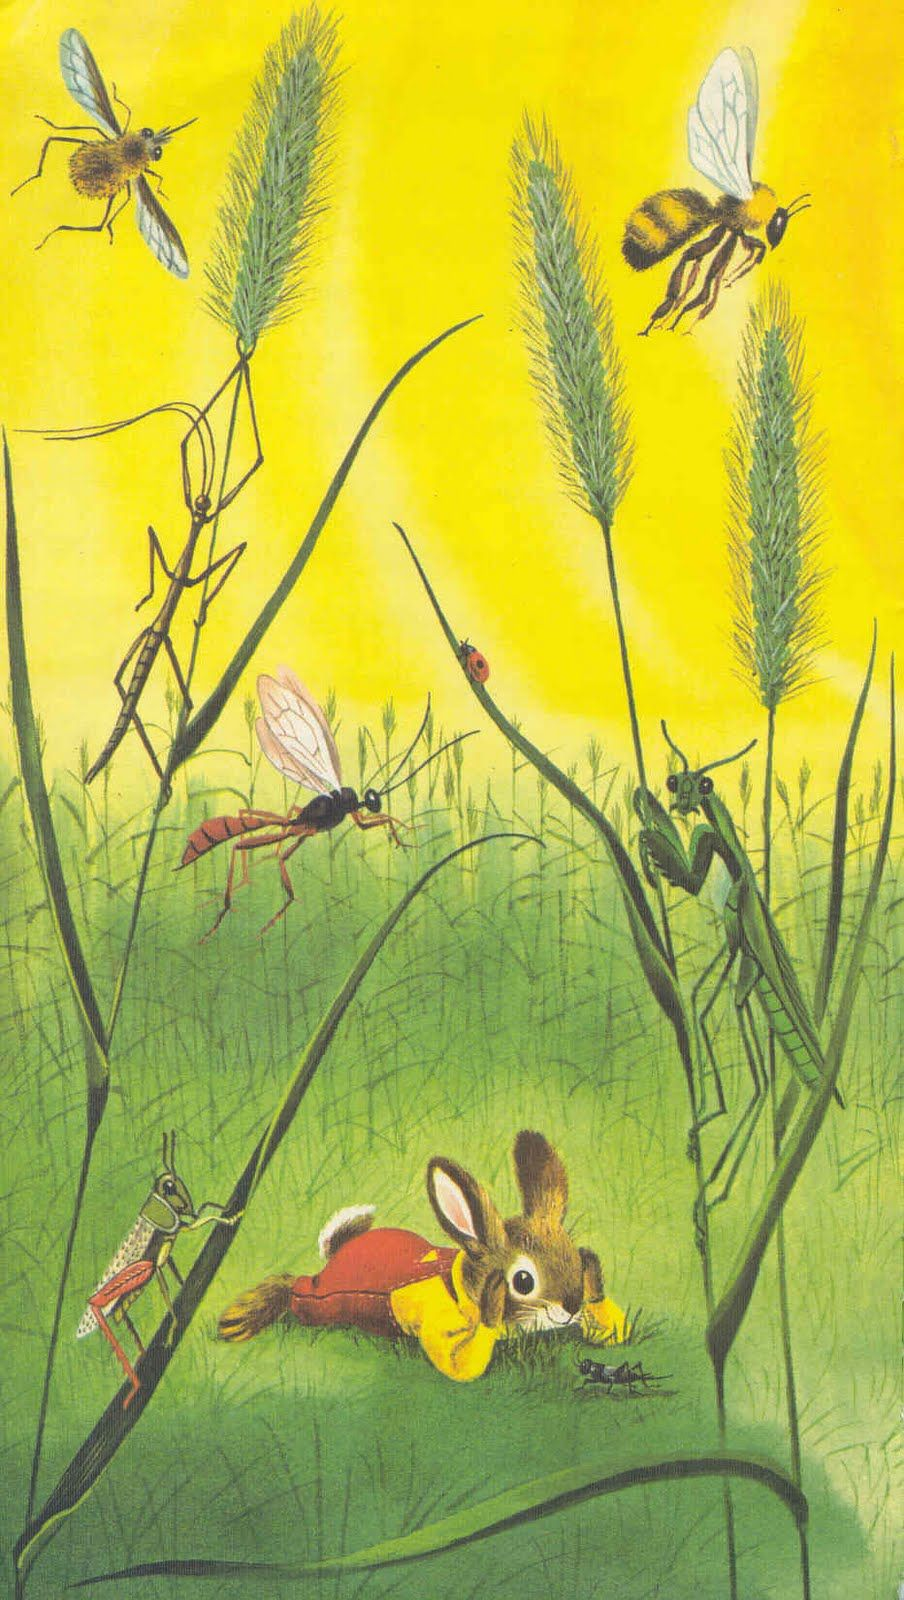 I Am A Bunny by Ole Risom, illustrated by Richard Scarry